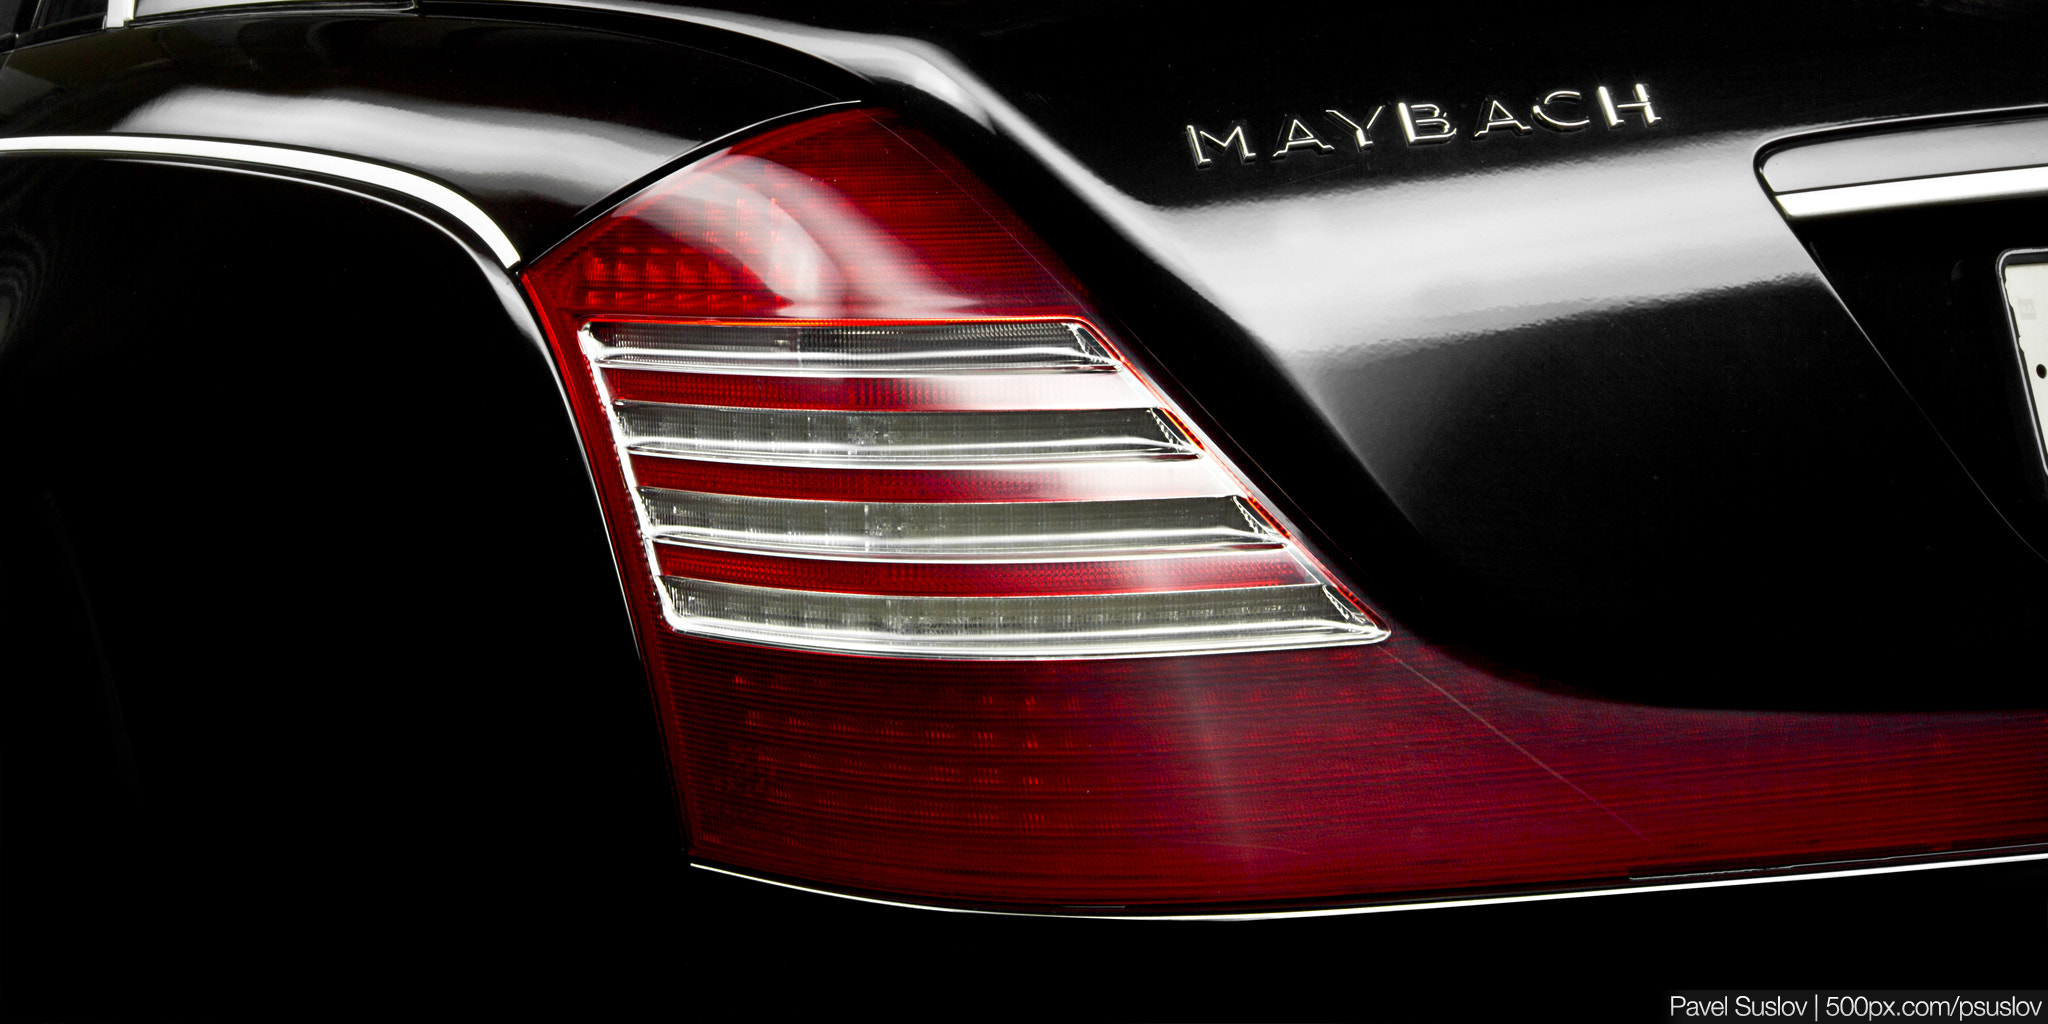 Photograph Maybach: Details by Pavel Suslov on 500px